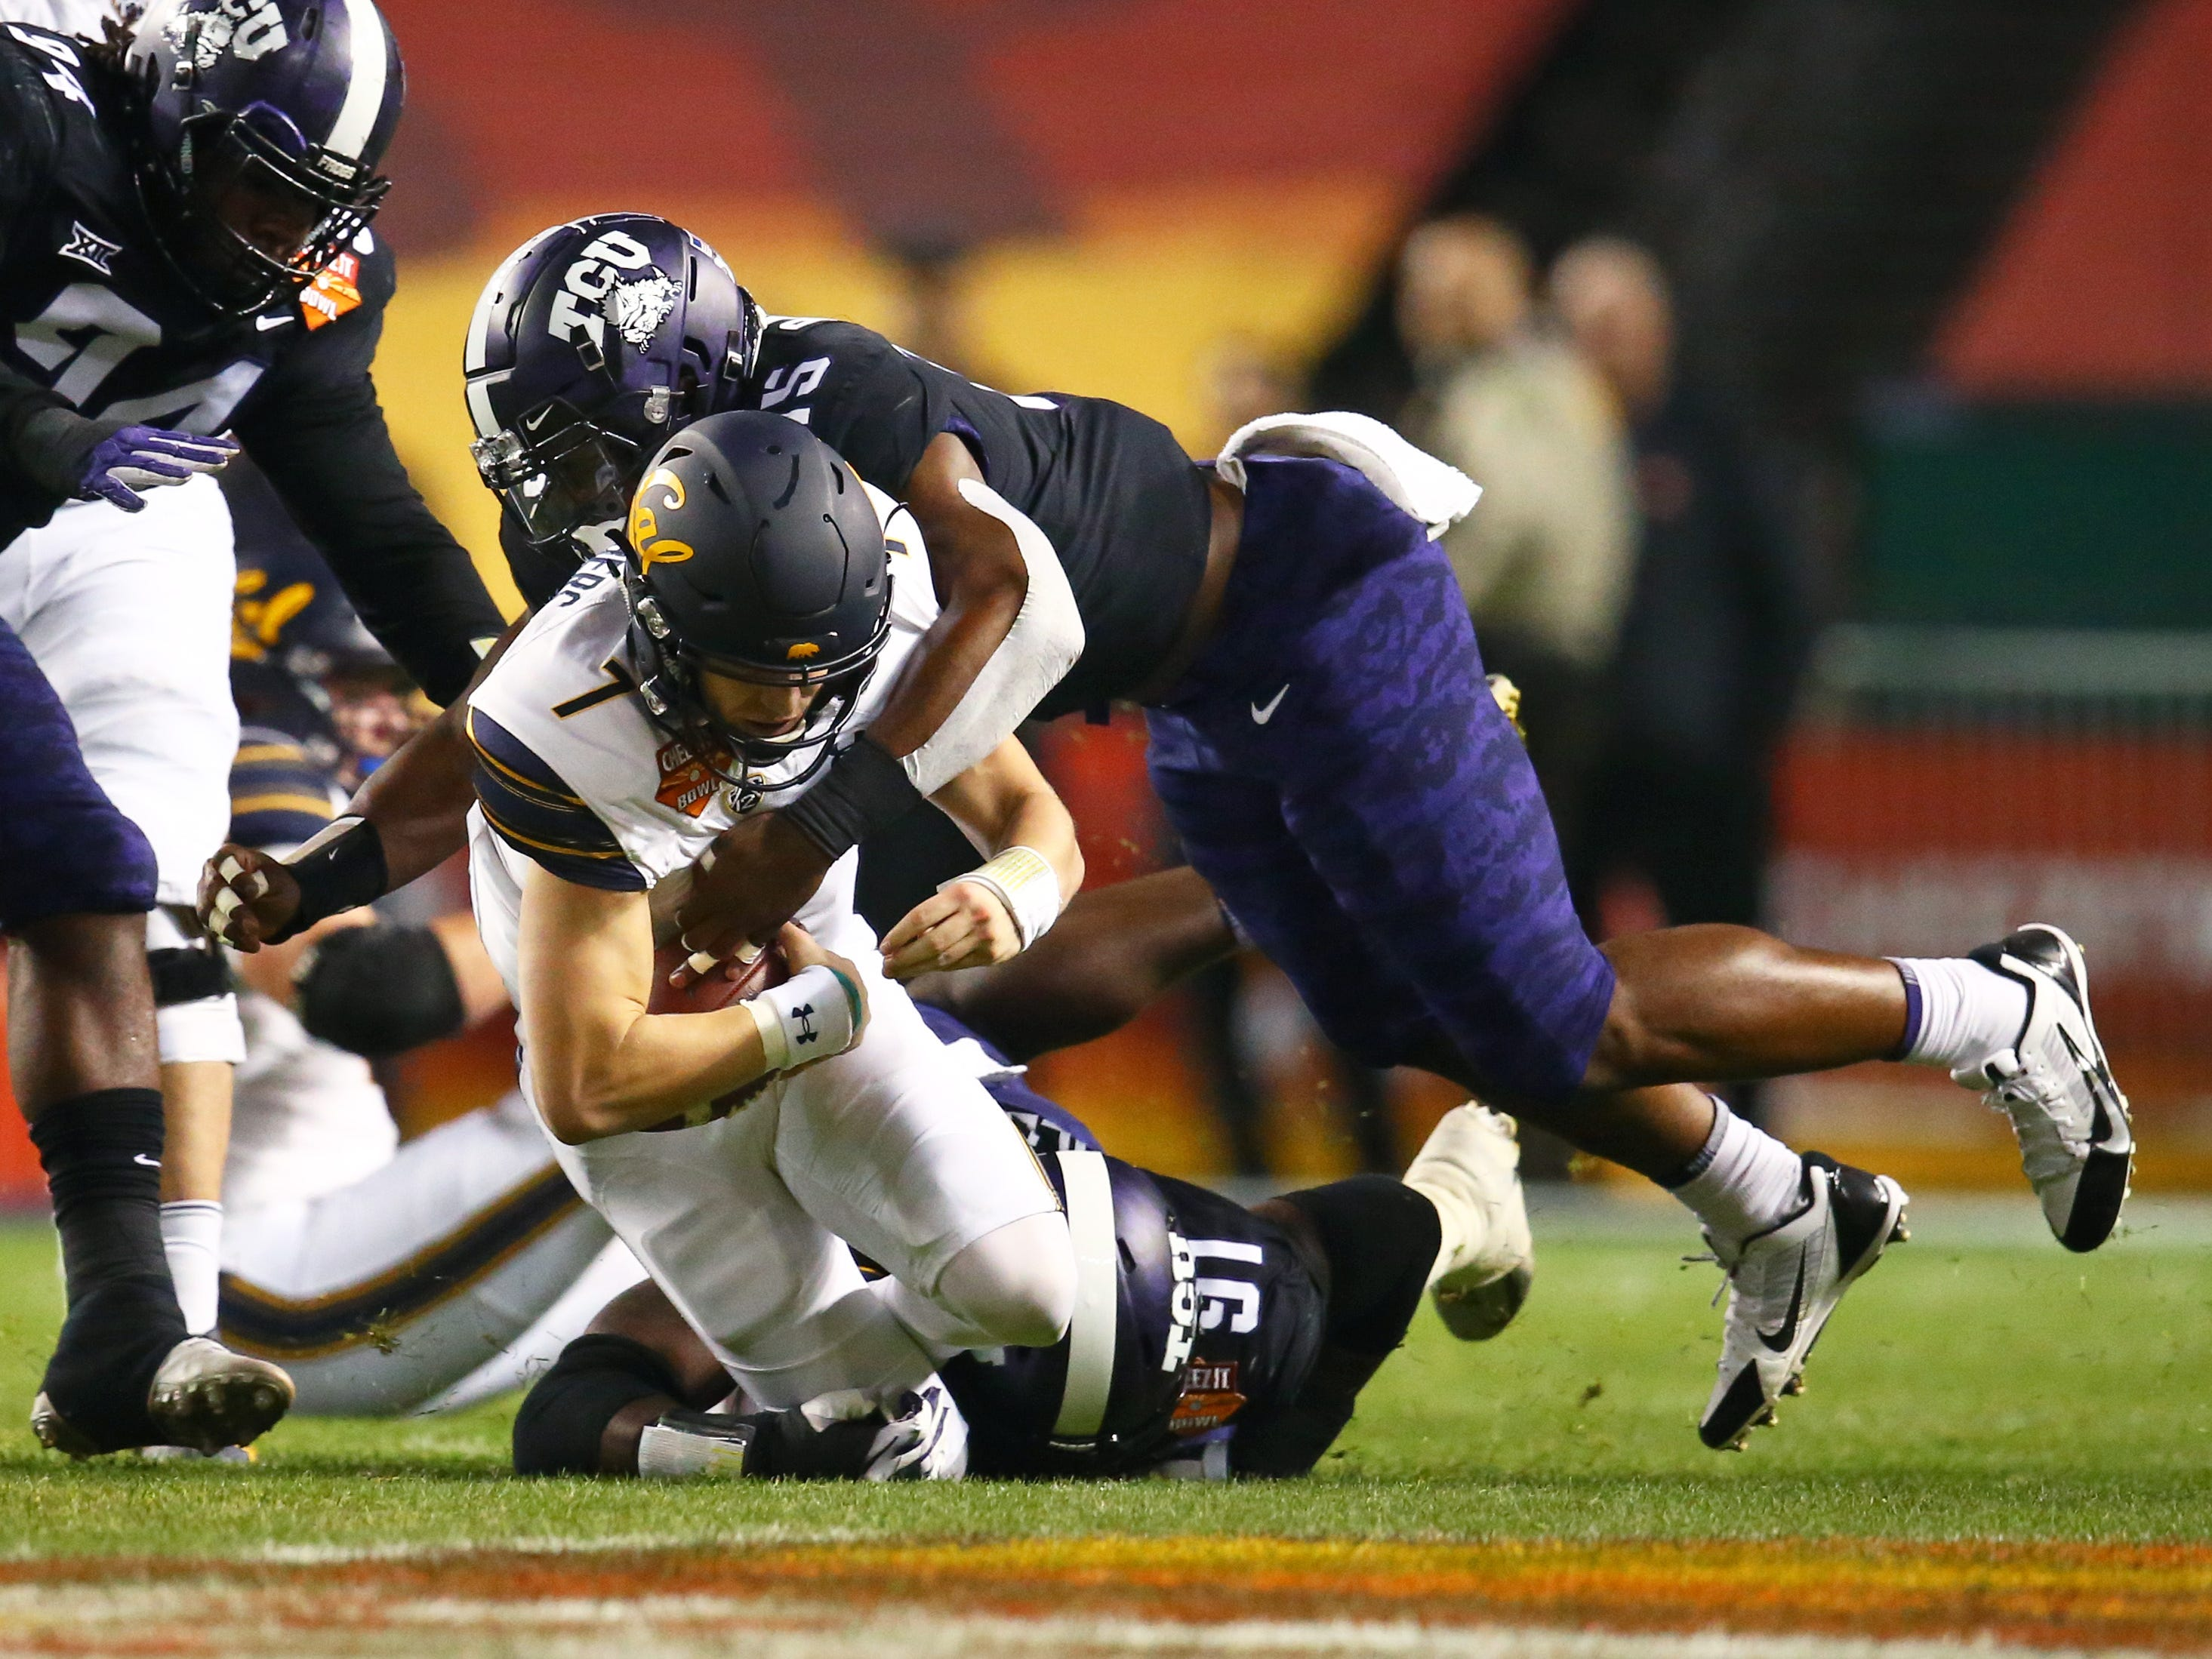 Dec 26, 2018; Phoenix, AZ, USA; California Golden Bears quarterback Chase Garbers (7) is tackled by Texas Christian Horned Frogs defensive end Ben Banogu (15) in the first half of the 2018 Cheez-It Bowl at Chase Field.